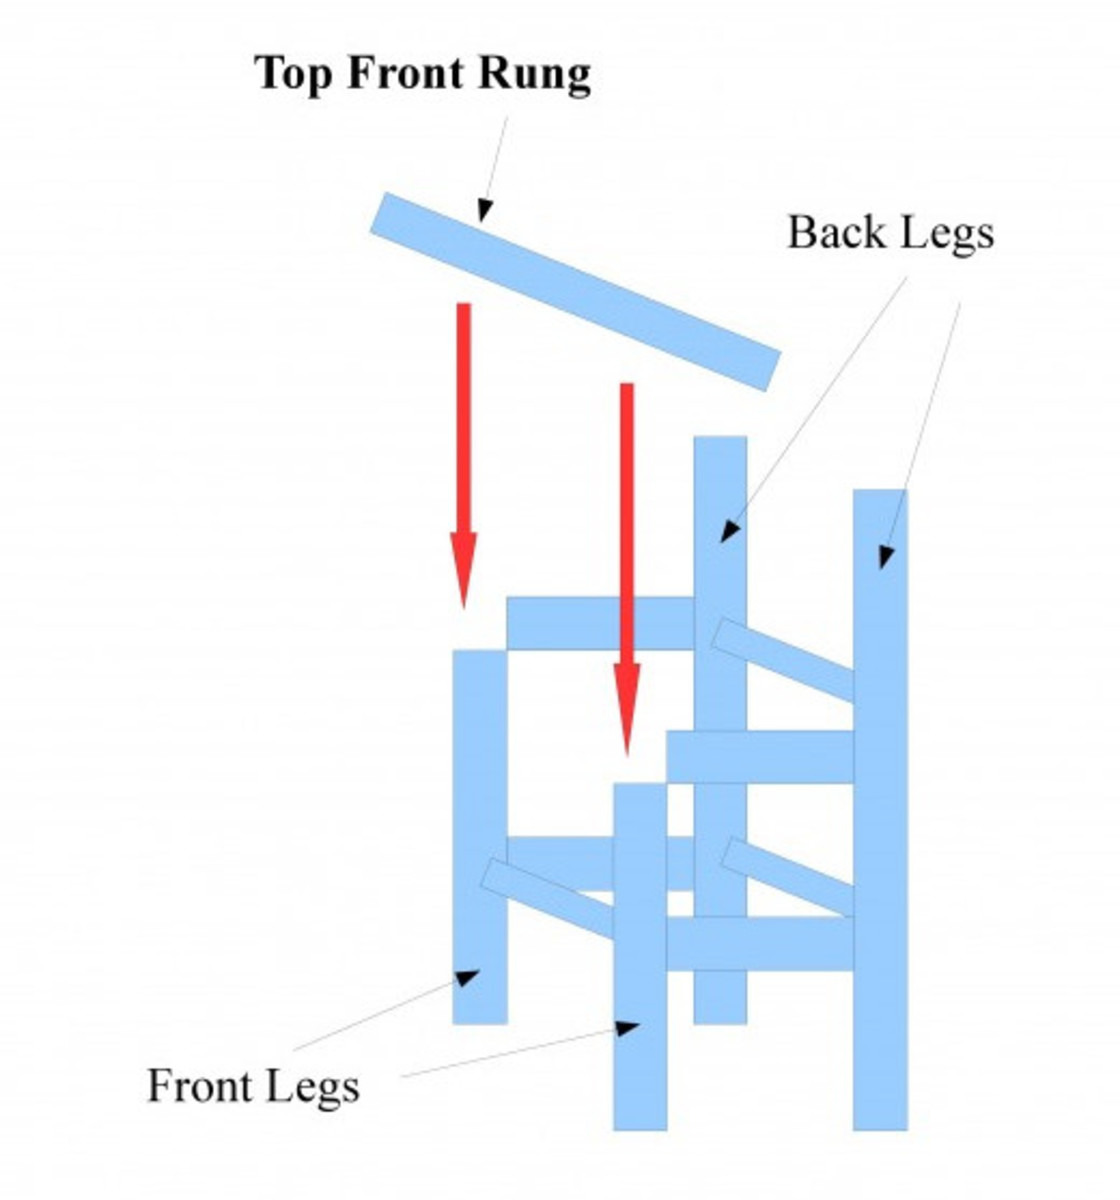 Placement of Chair Top Front Rung